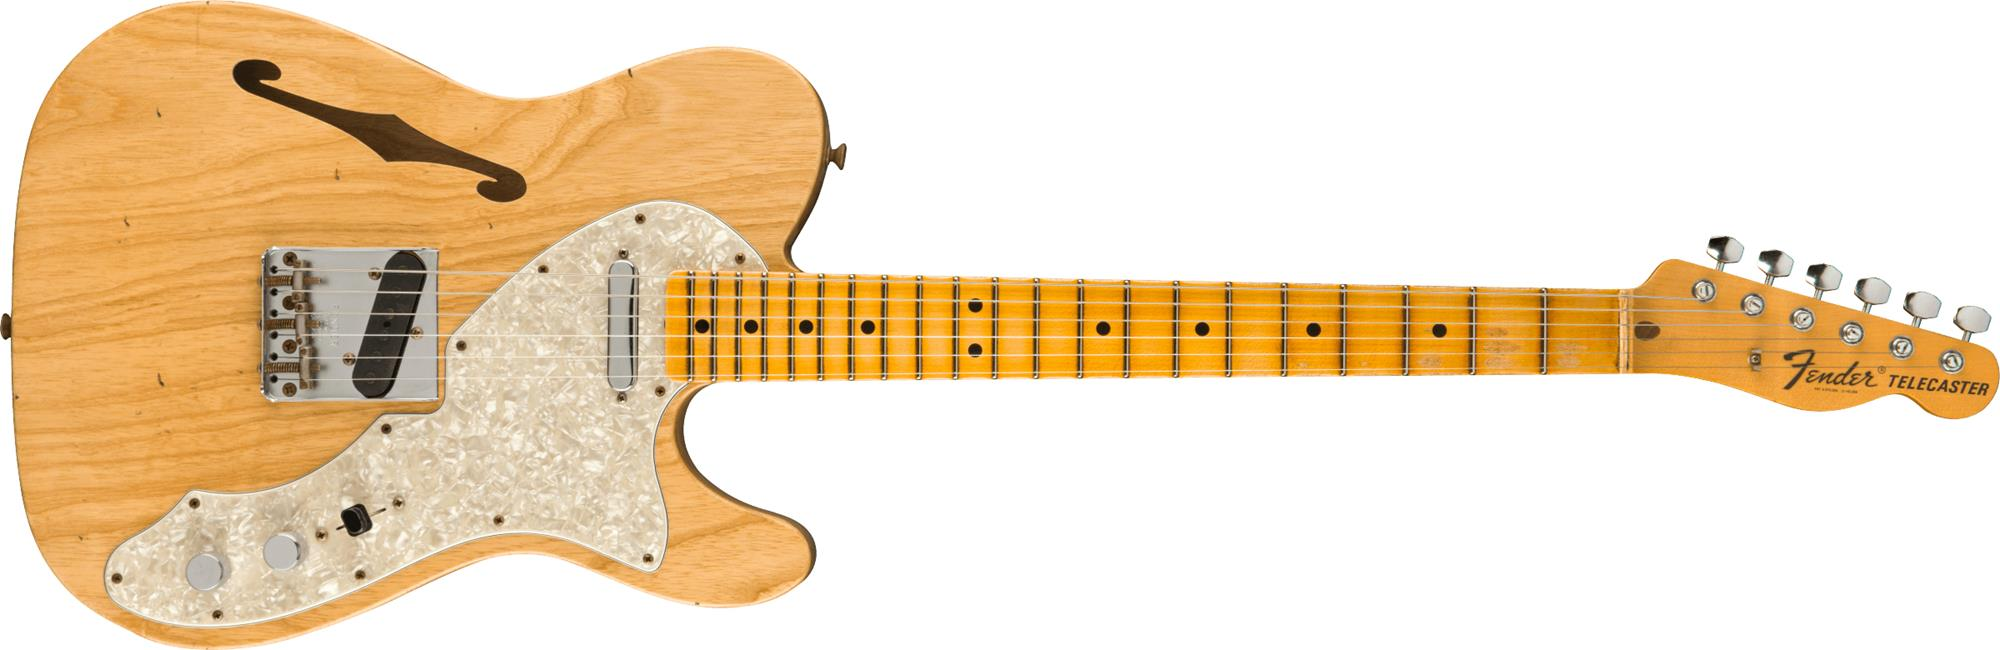 FENDER-1969-Telecaster-Thinline-Journeyman-Relic-Maple-Fingerboard-Aged-Natural-sku-571005321